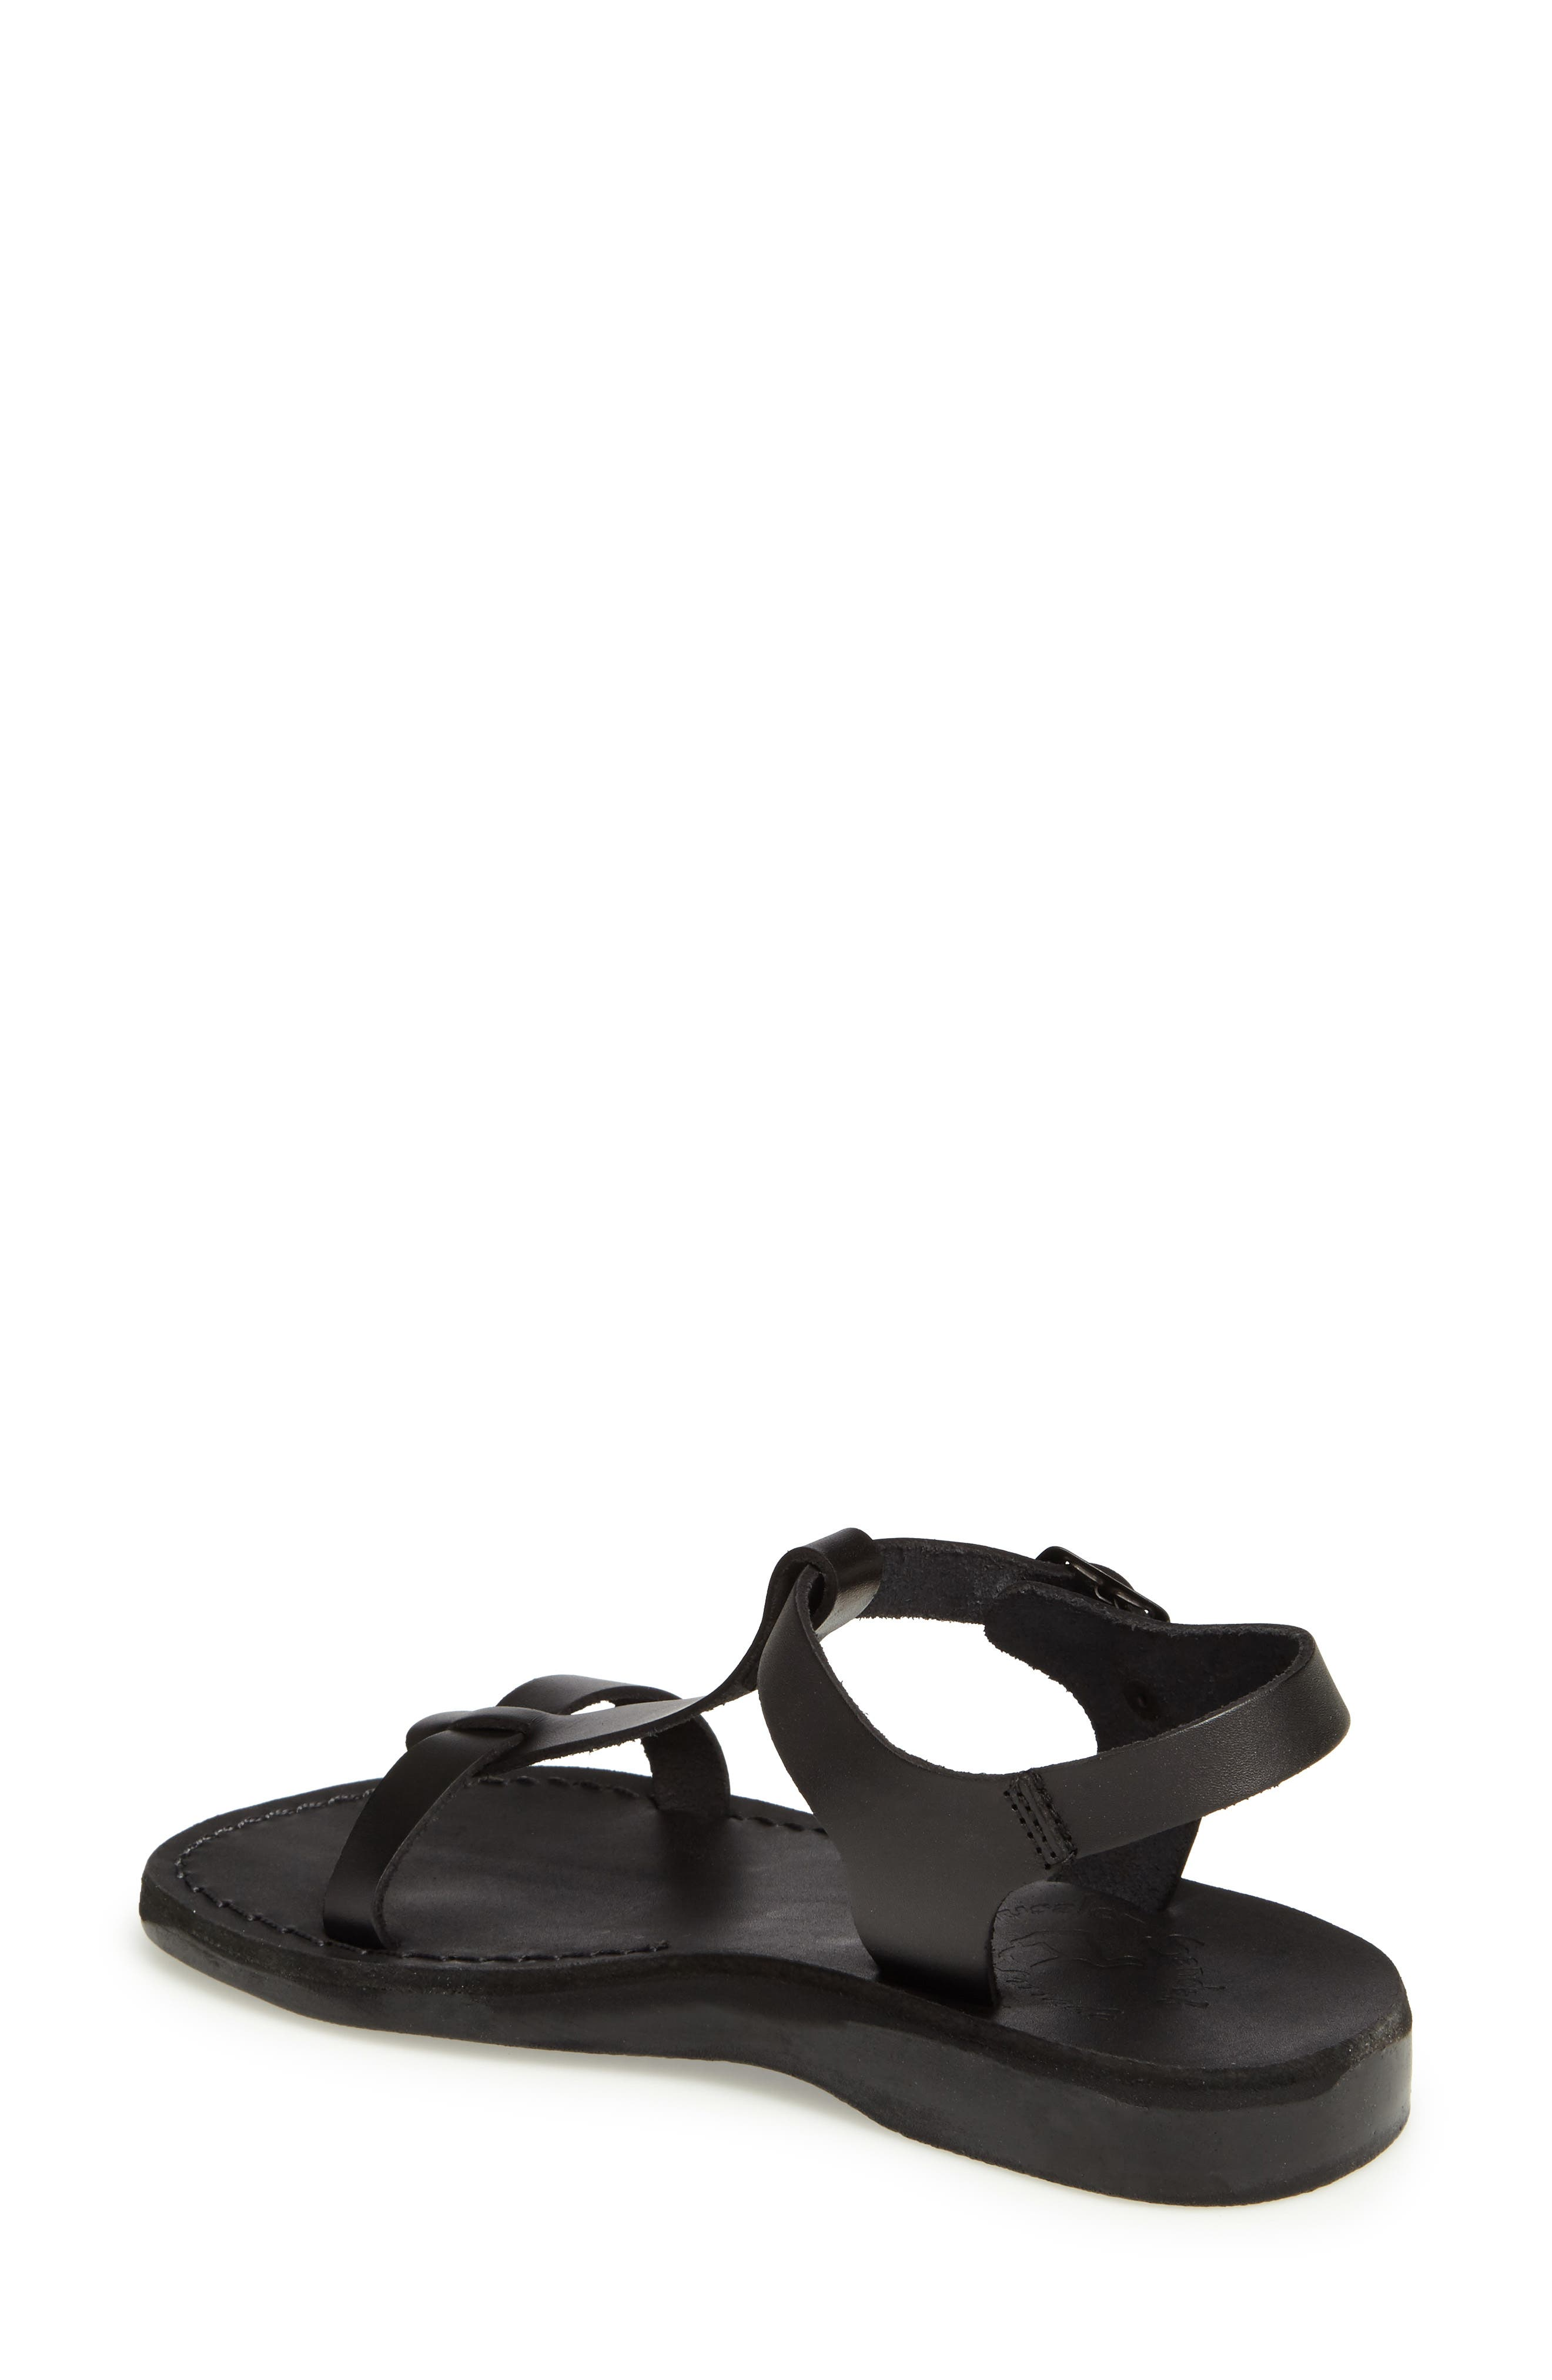 Bathsheba T-Strap Sandal,                             Alternate thumbnail 2, color,                             001